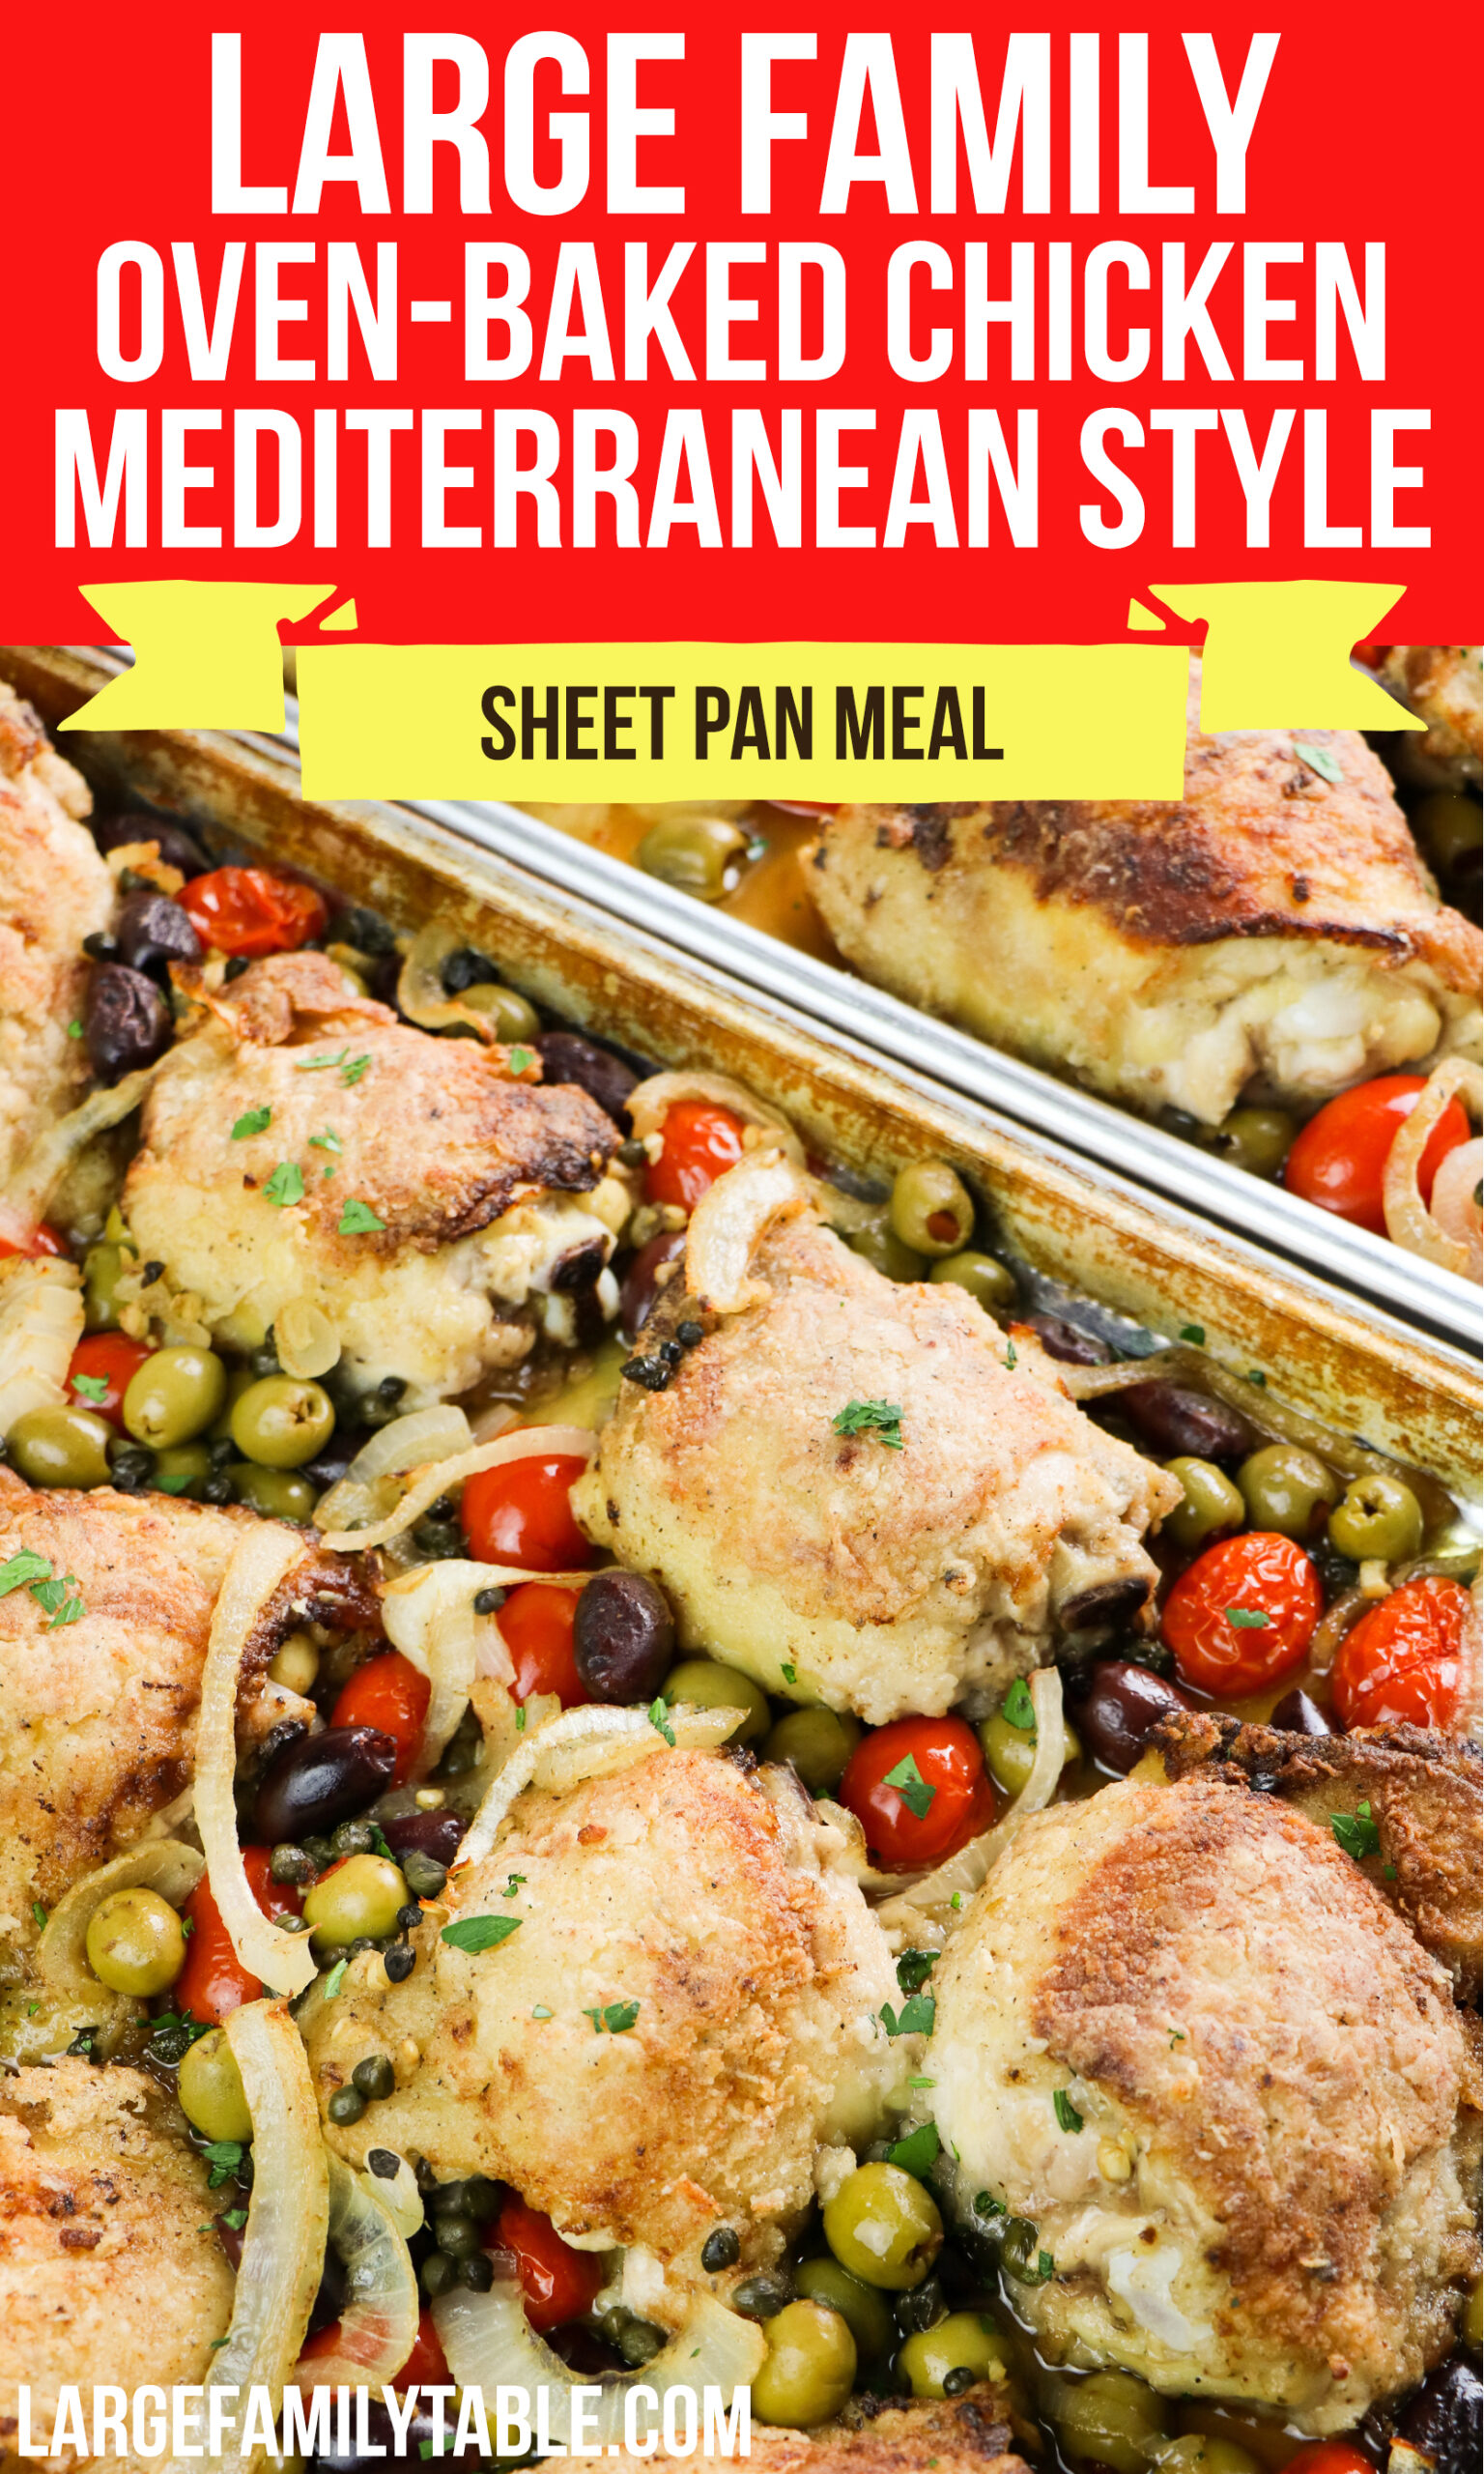 Large Family Oven-baked Mediterranean Chicken